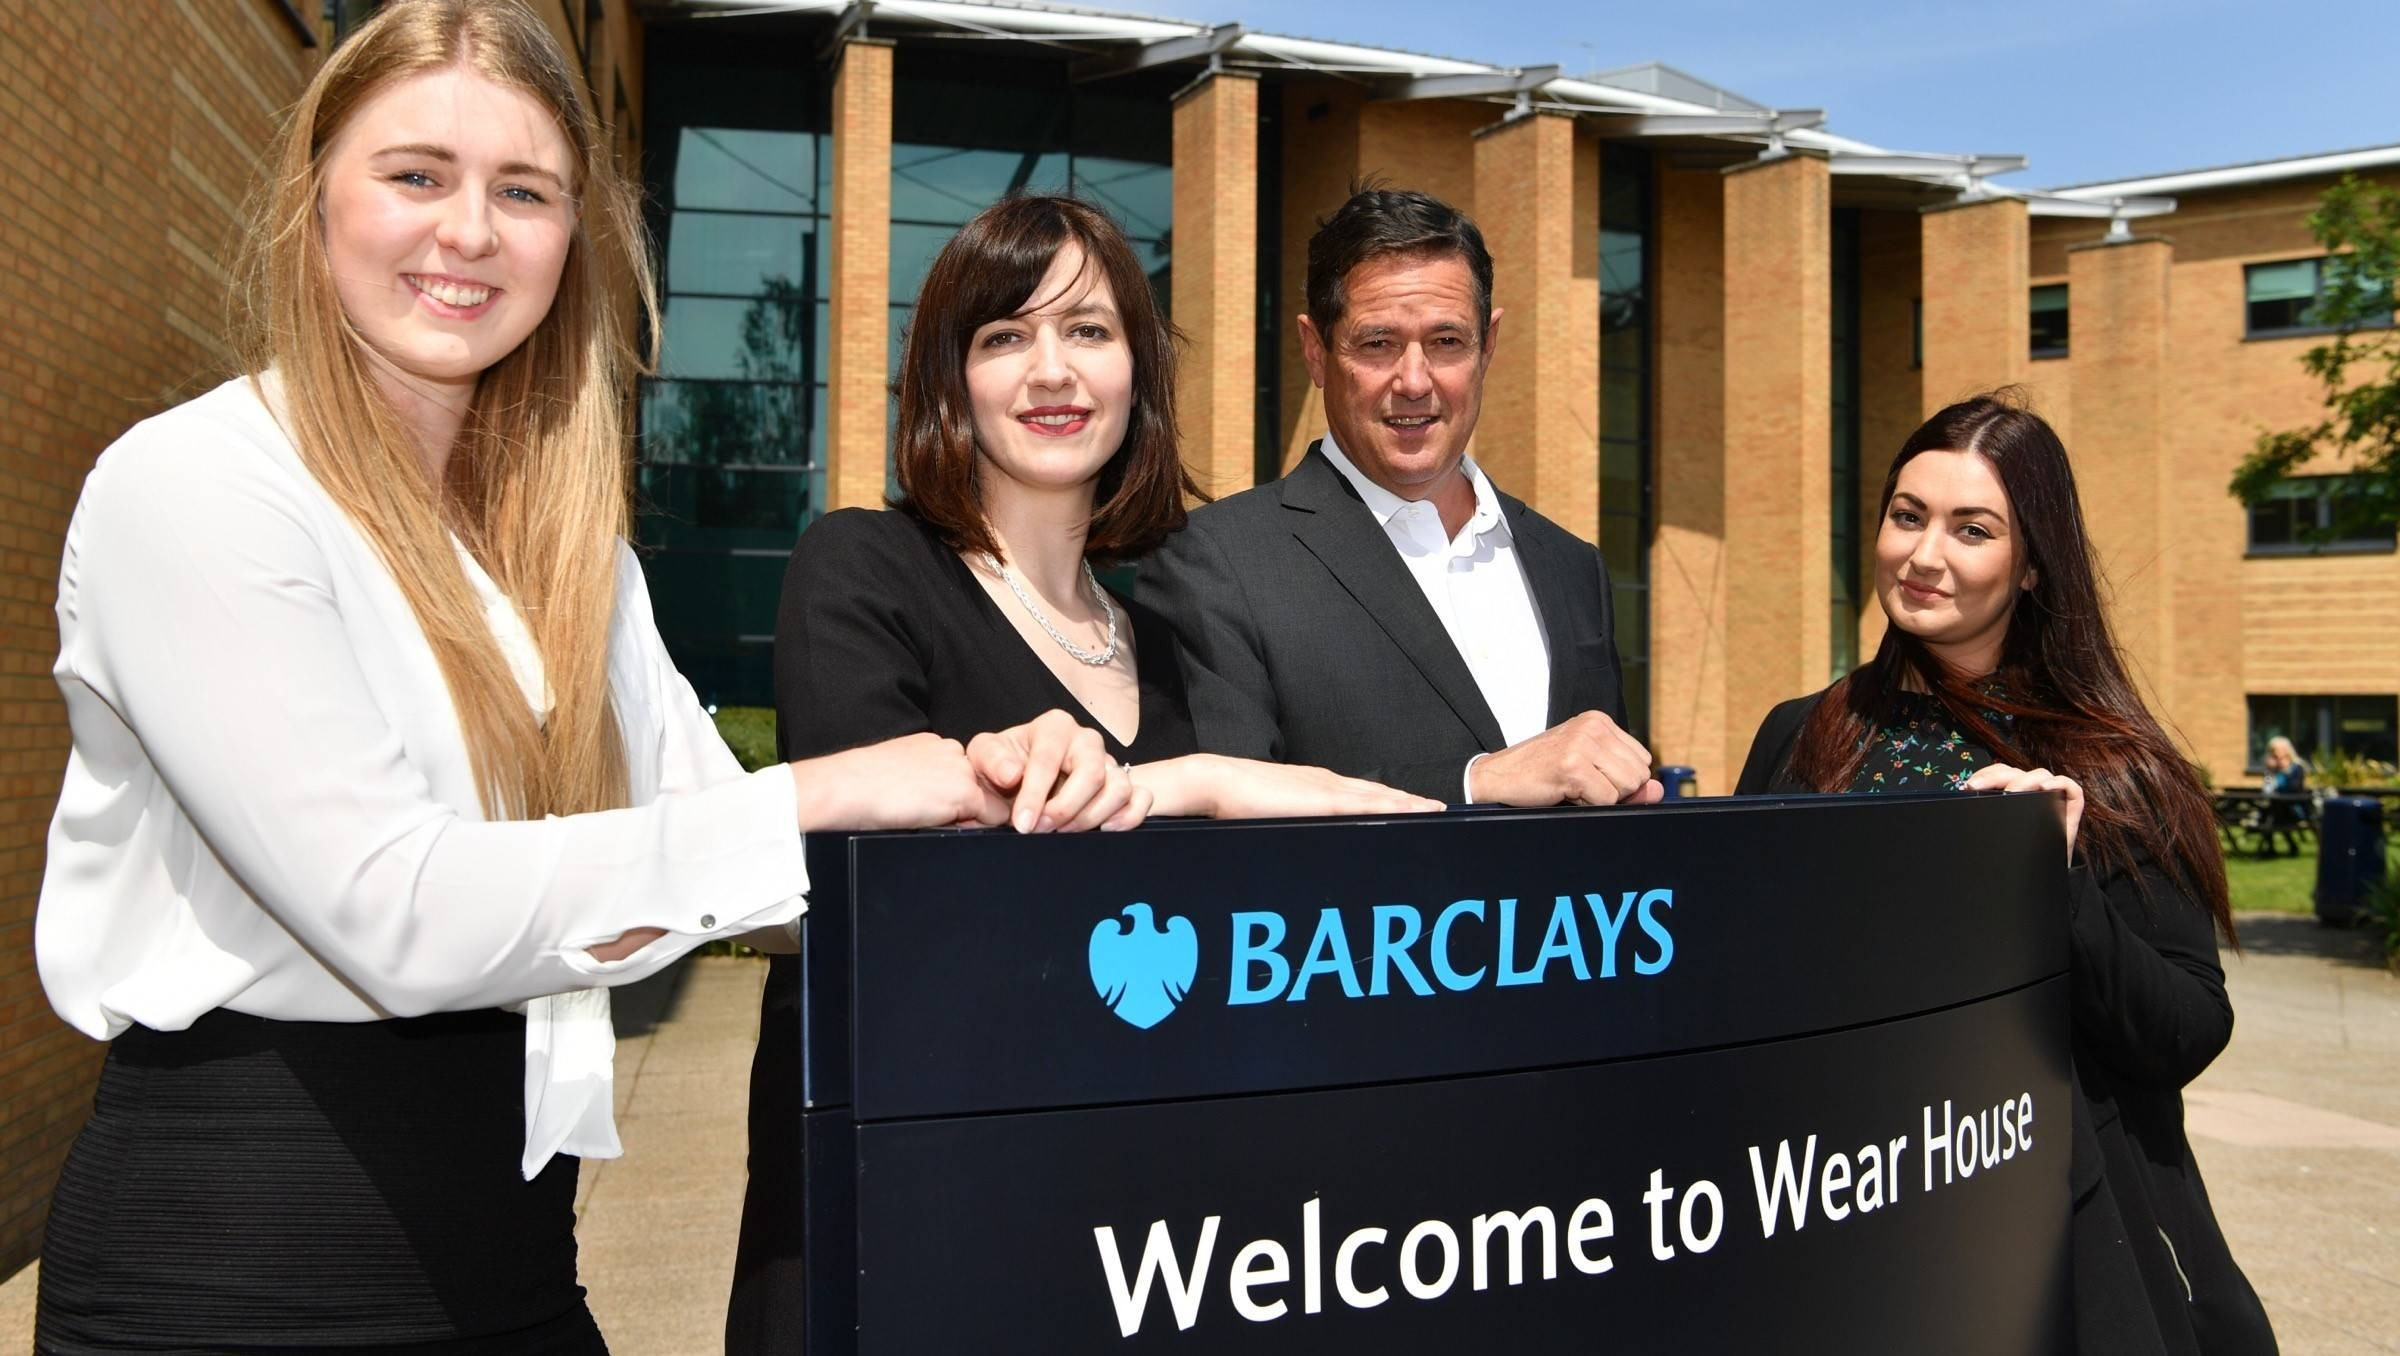 Jes Staley at Barclays Wear House